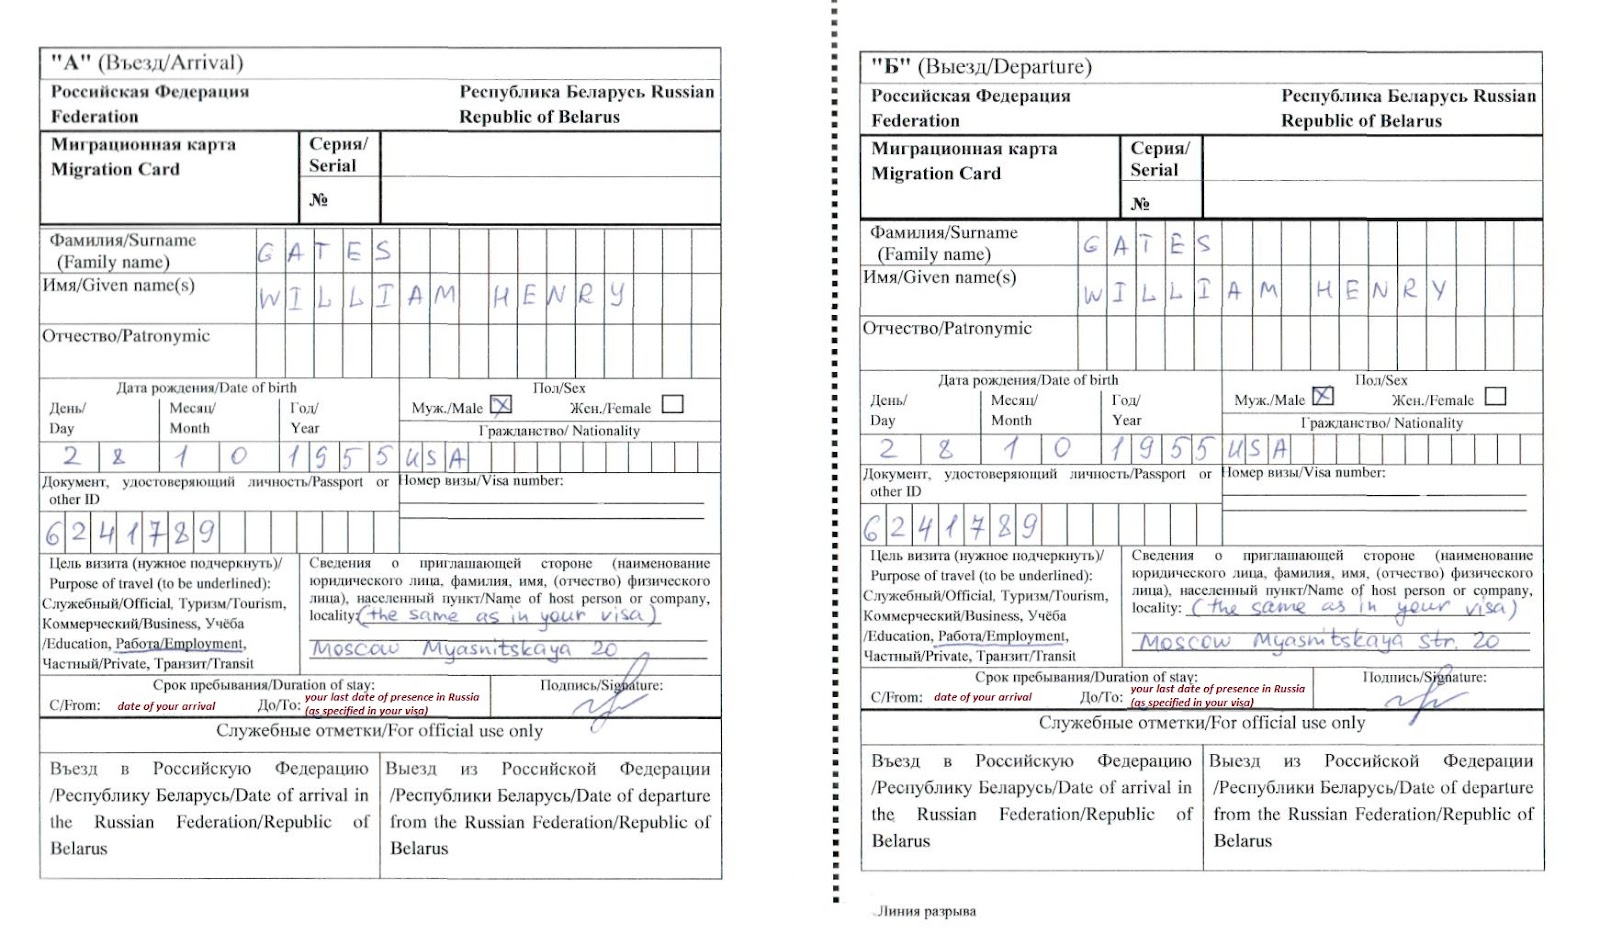 Russian migration card given out on the border